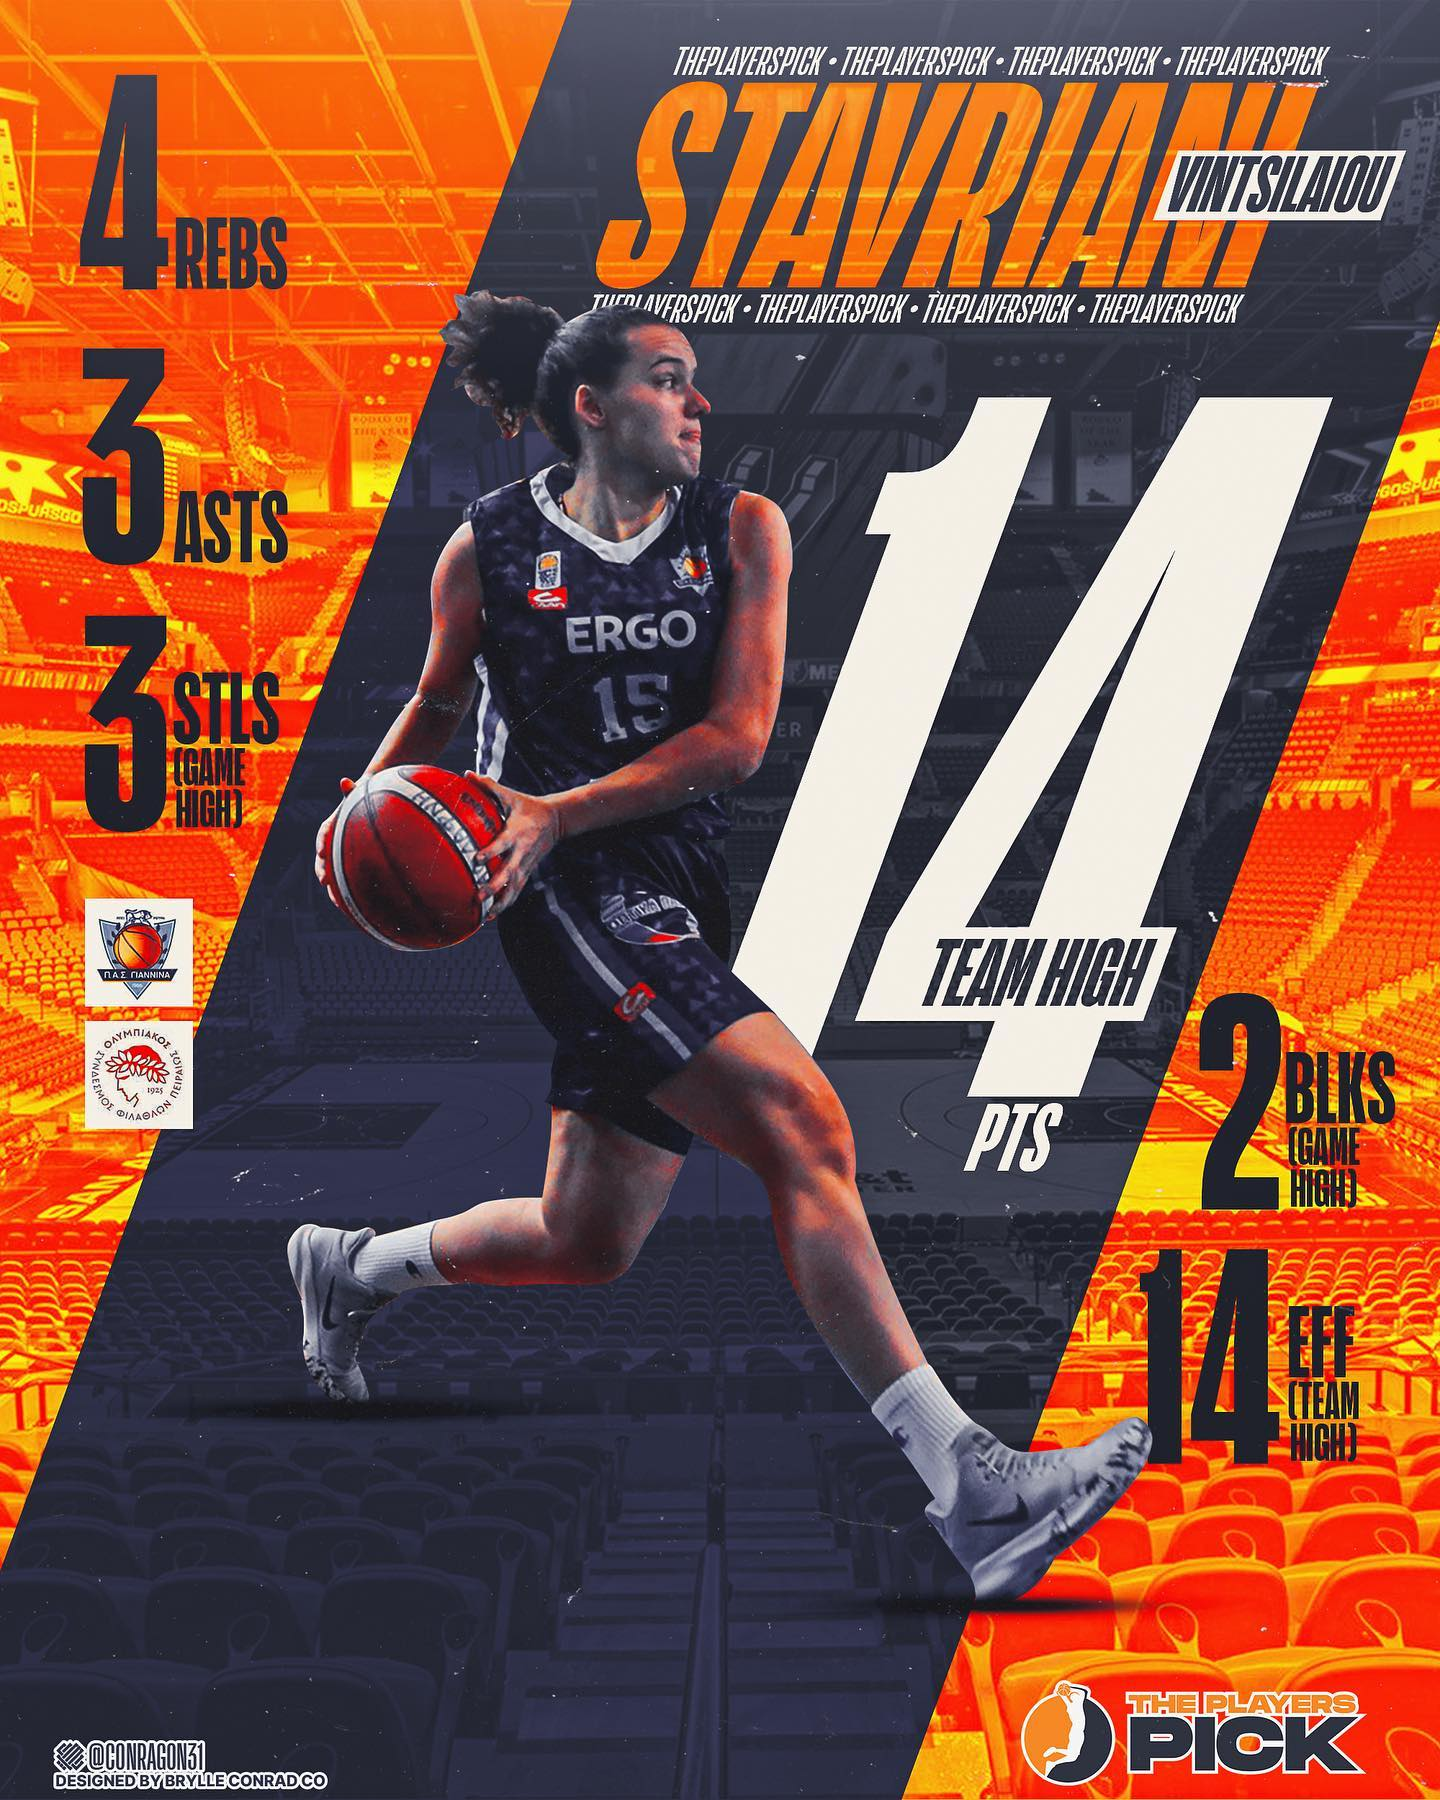 Stavriani Vintsilaiou was the Top Performer of her team vs Olympiacos!